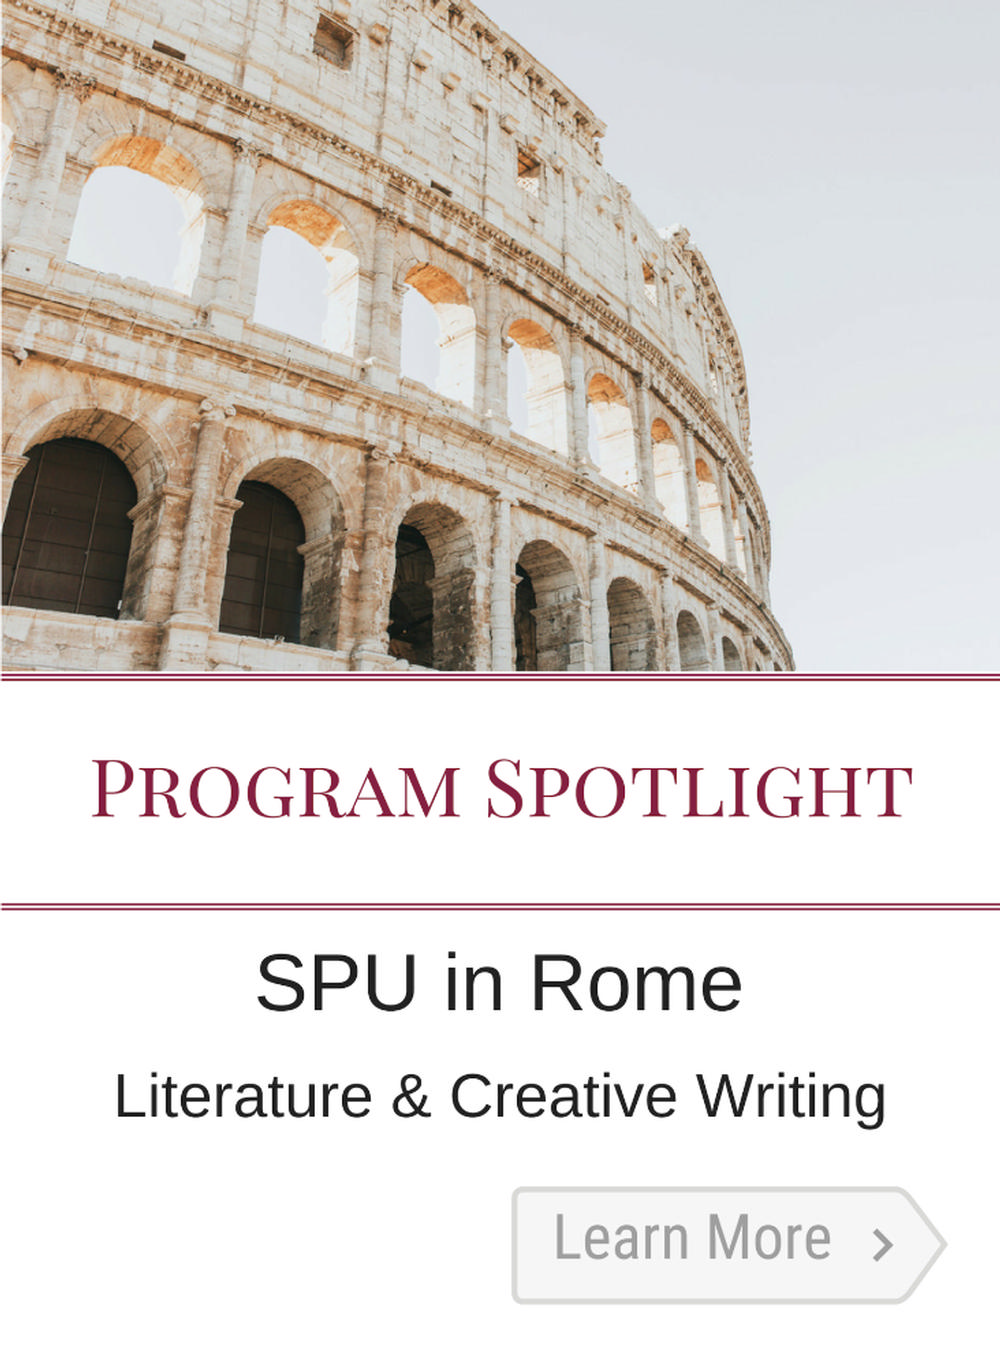 Program Spotlight Rome